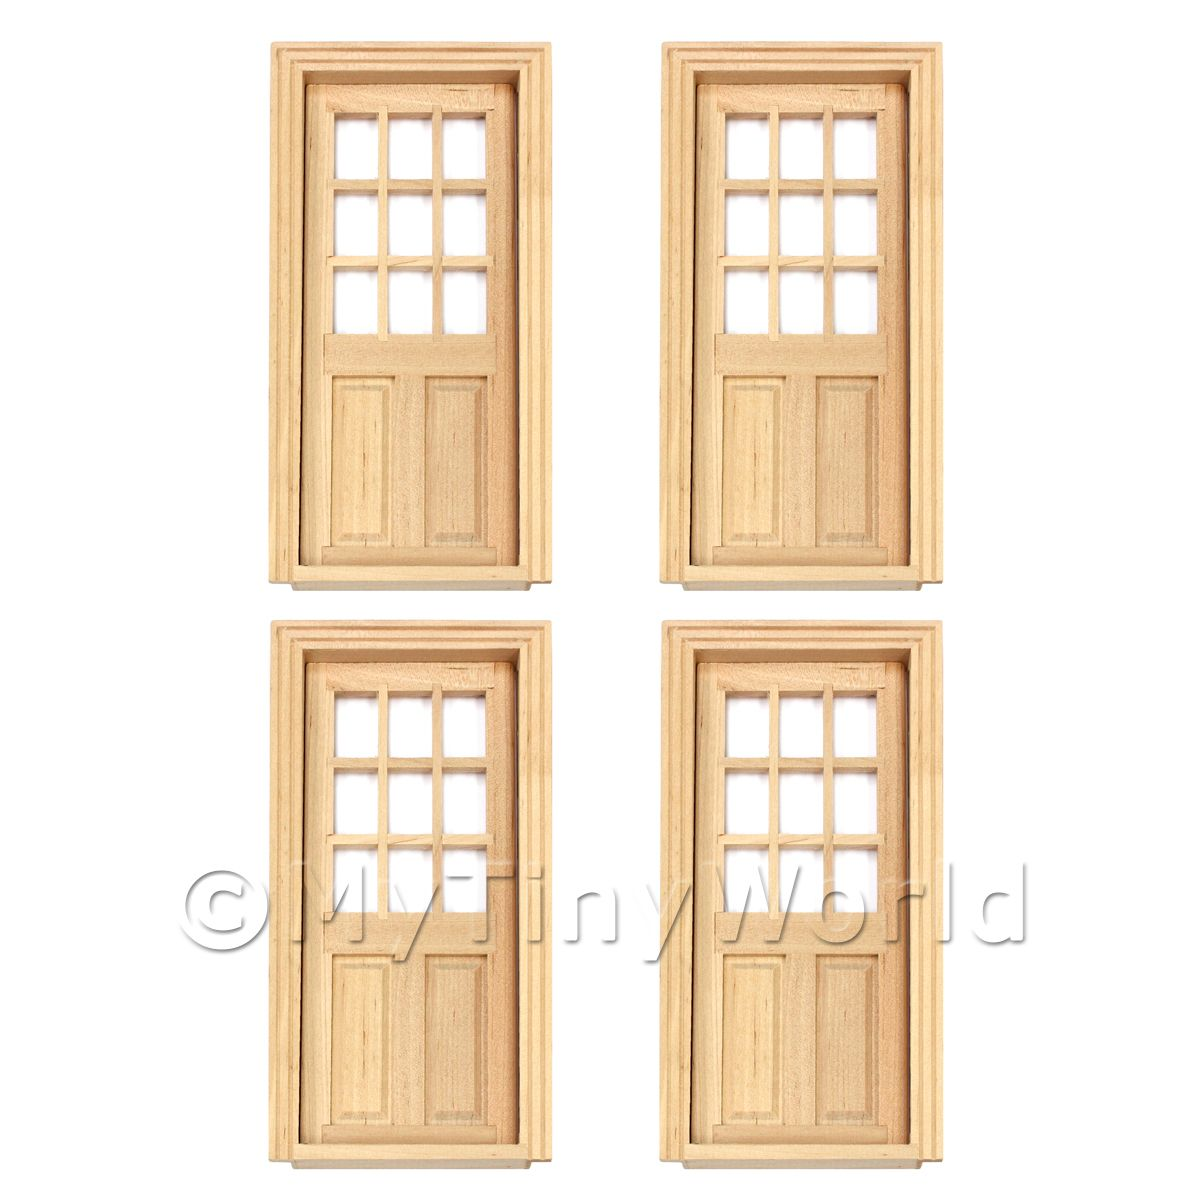 4 x Dolls House Miniature 9 Panel Glazed Wood Doors